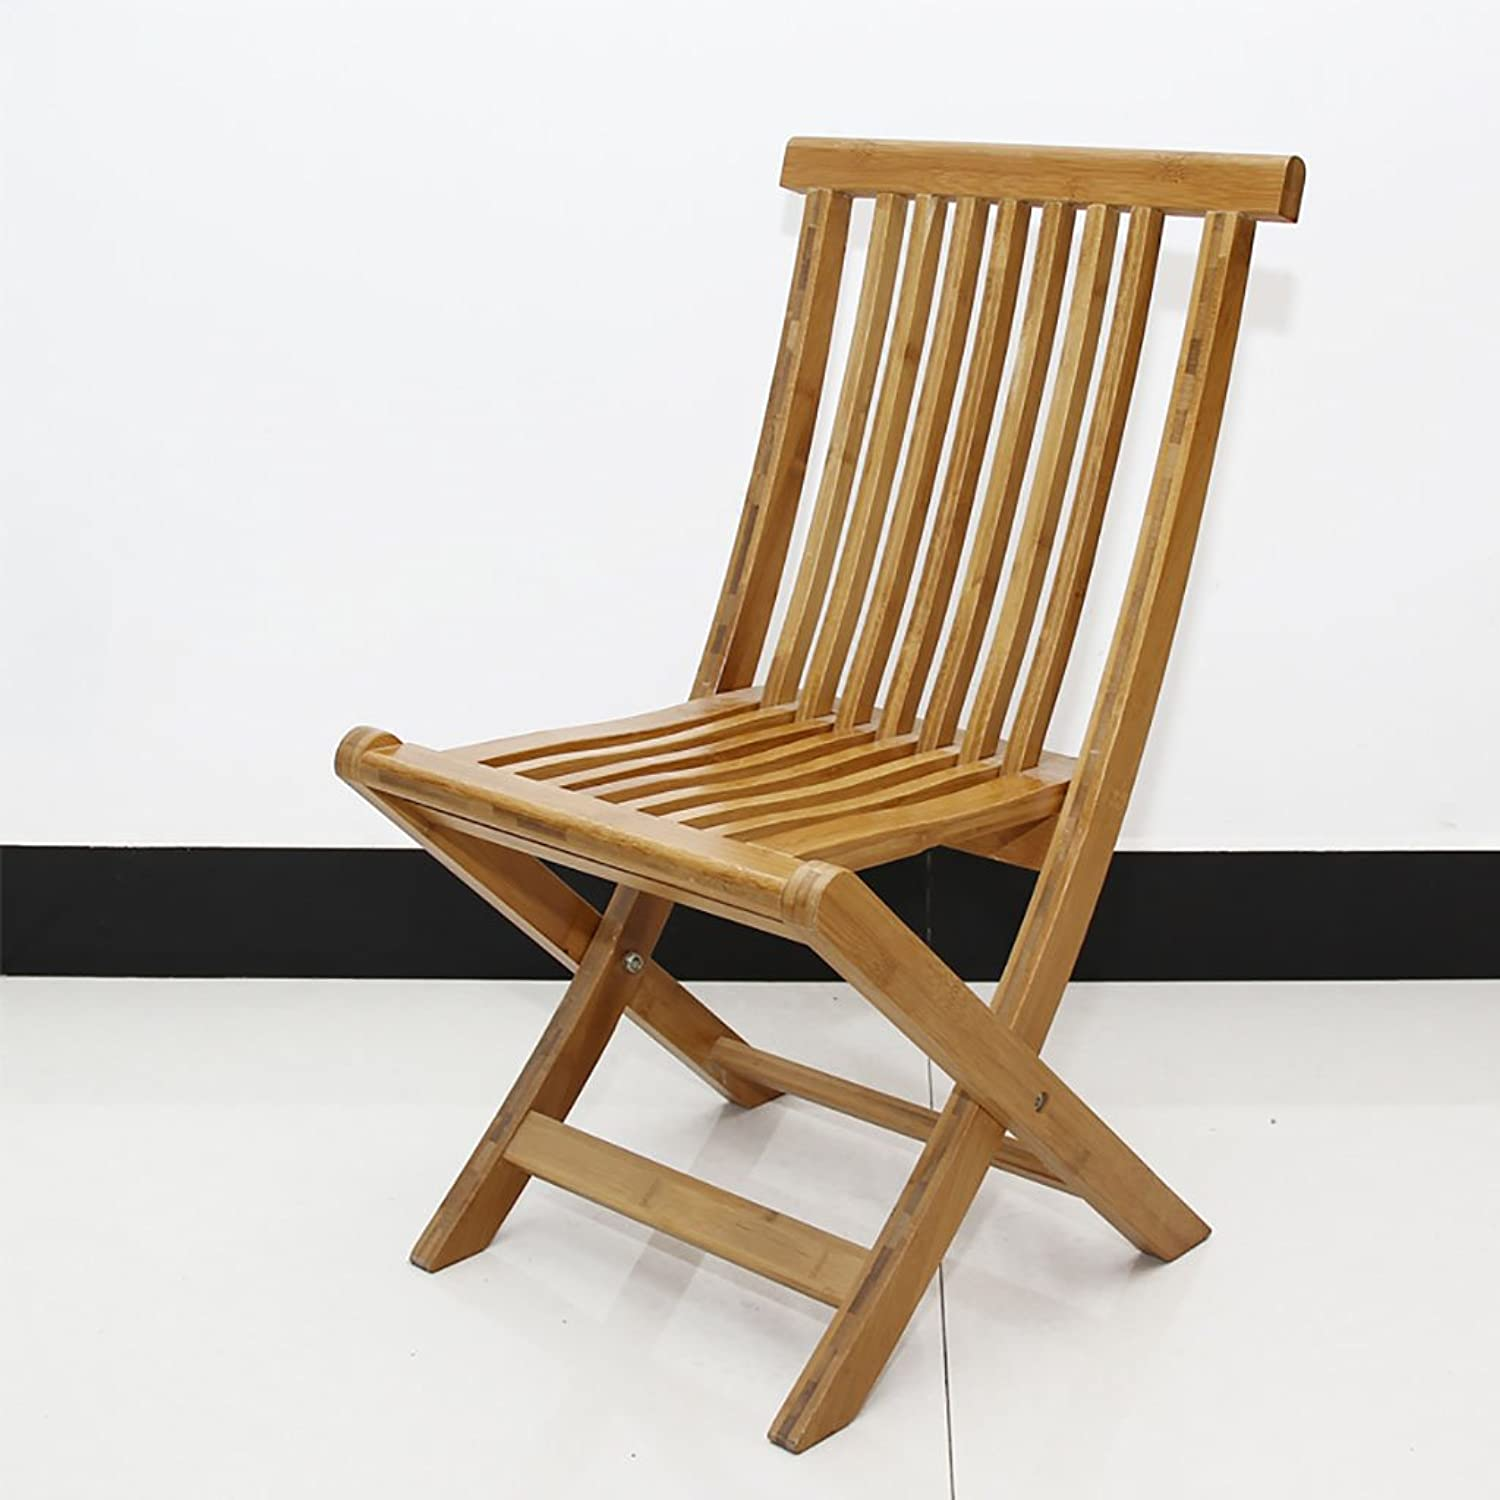 Chair Folding Bamboo Folding Chair Curved Folding Backrest Chair (Size   L)